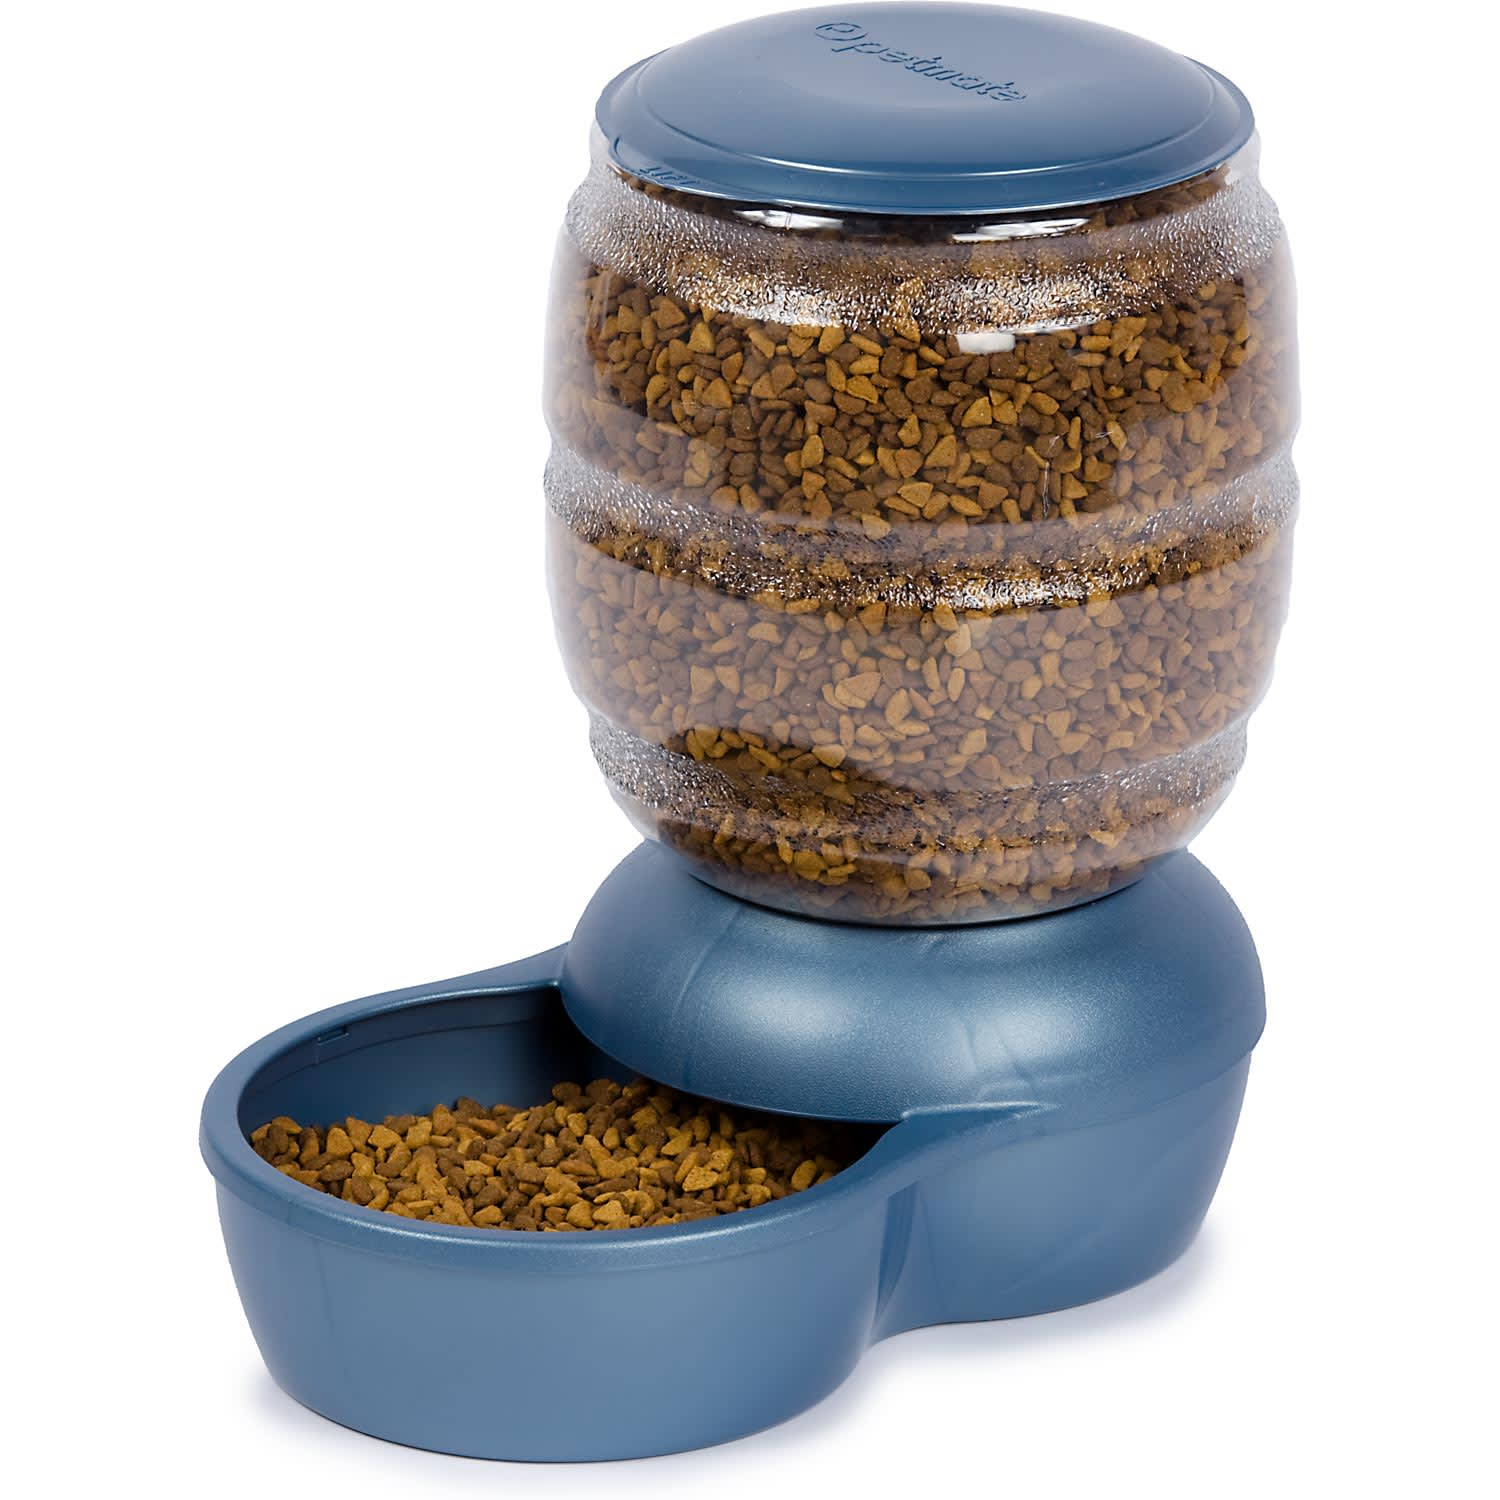 Petmate Replendish Gravity Feeder Blue Dog Bowl 18 Lb Petco